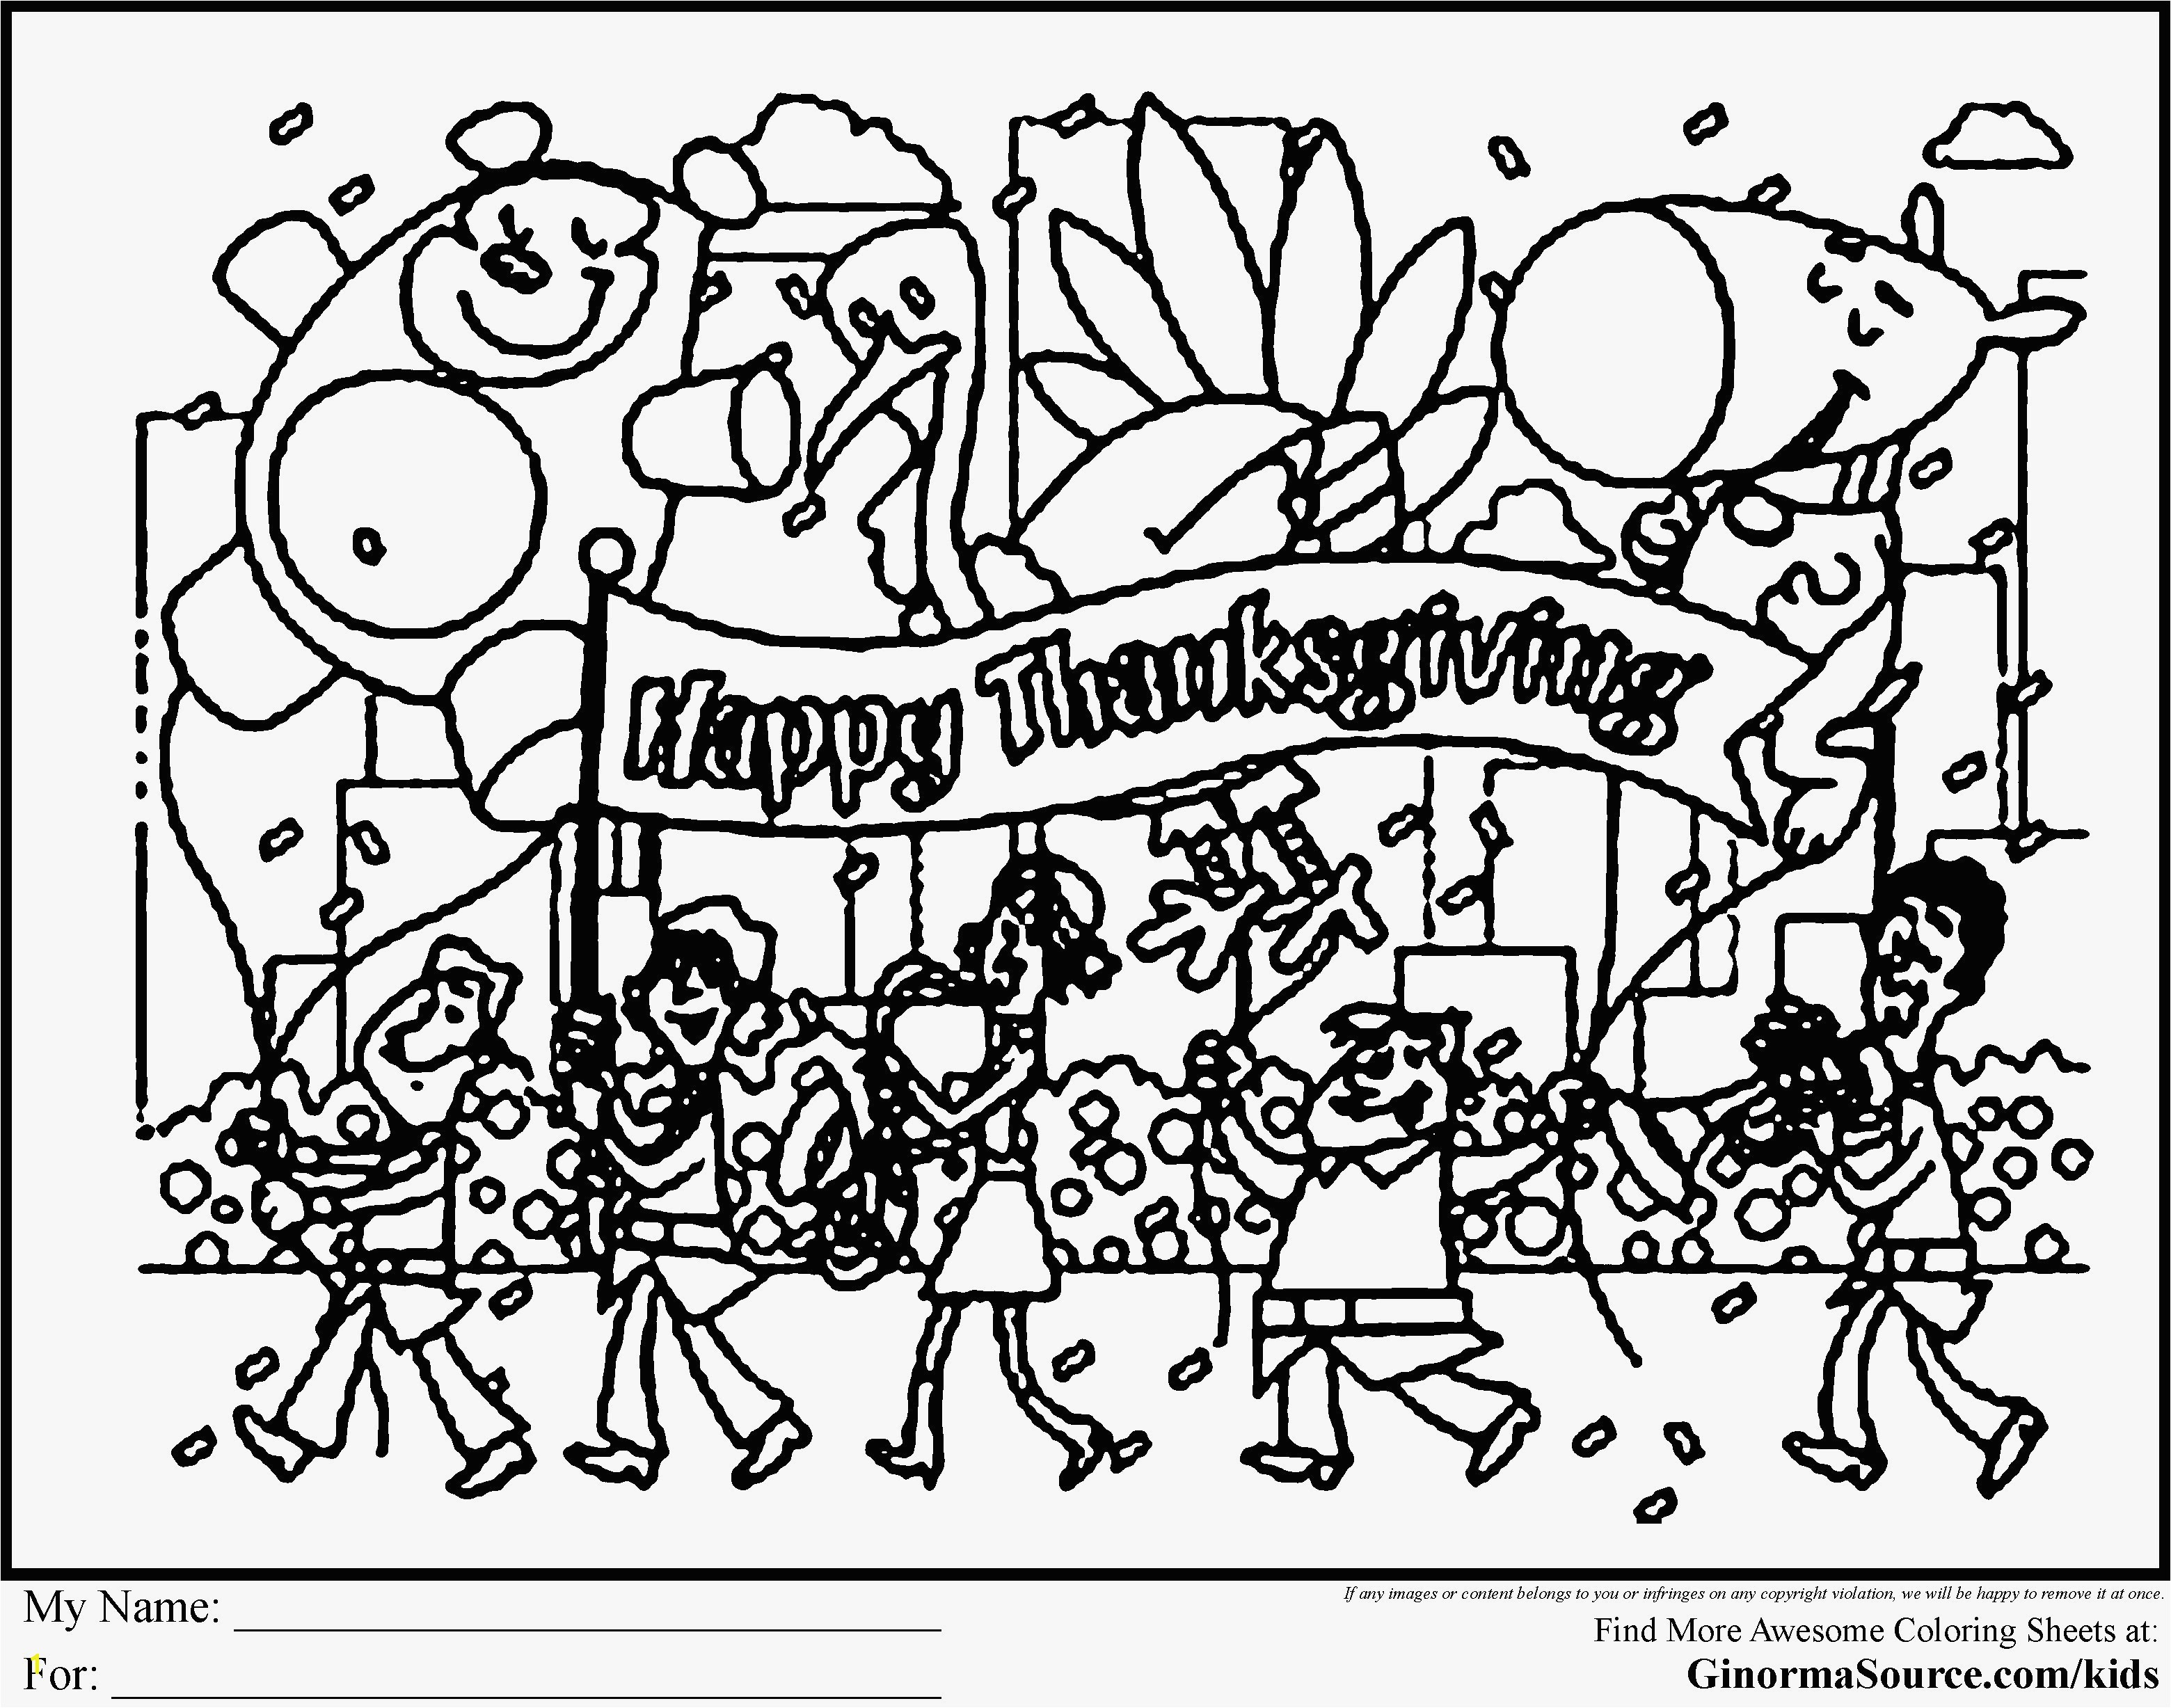 Be Mine Coloring Pages Lovely Awesome 40 Awesome S Coloring Pages Horses – Coloring Sheets for